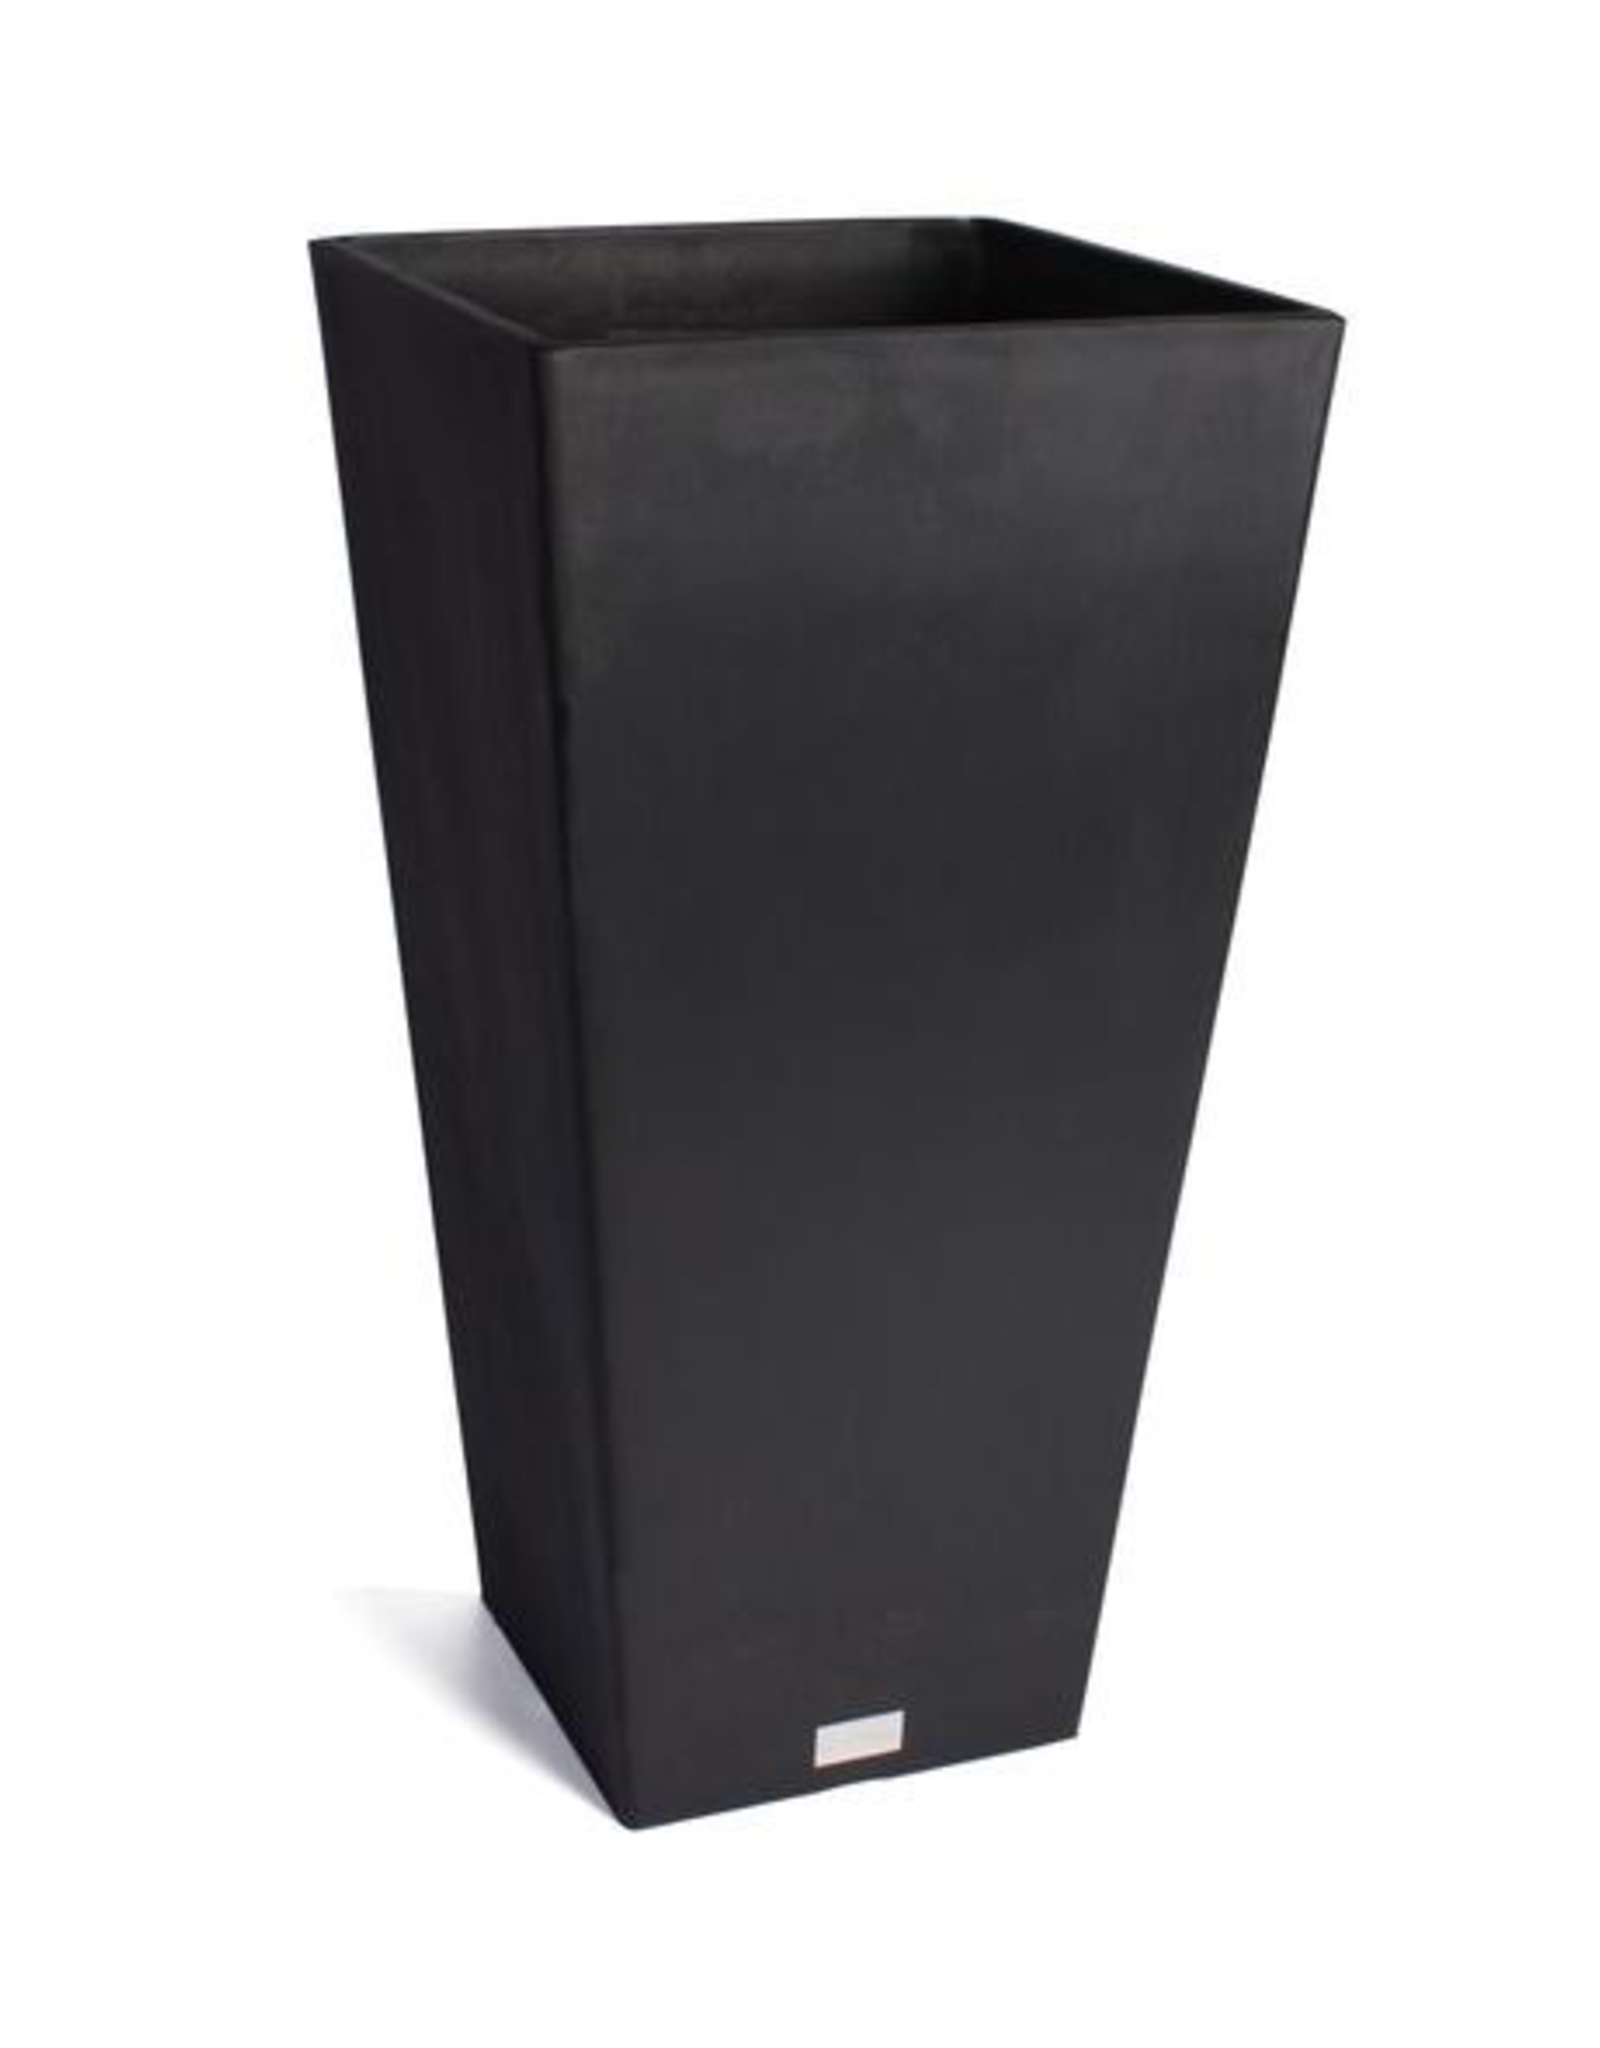 "Planter, Midland, Black Plastic Tapered Square  L13.5"" H24"" W13.5"""